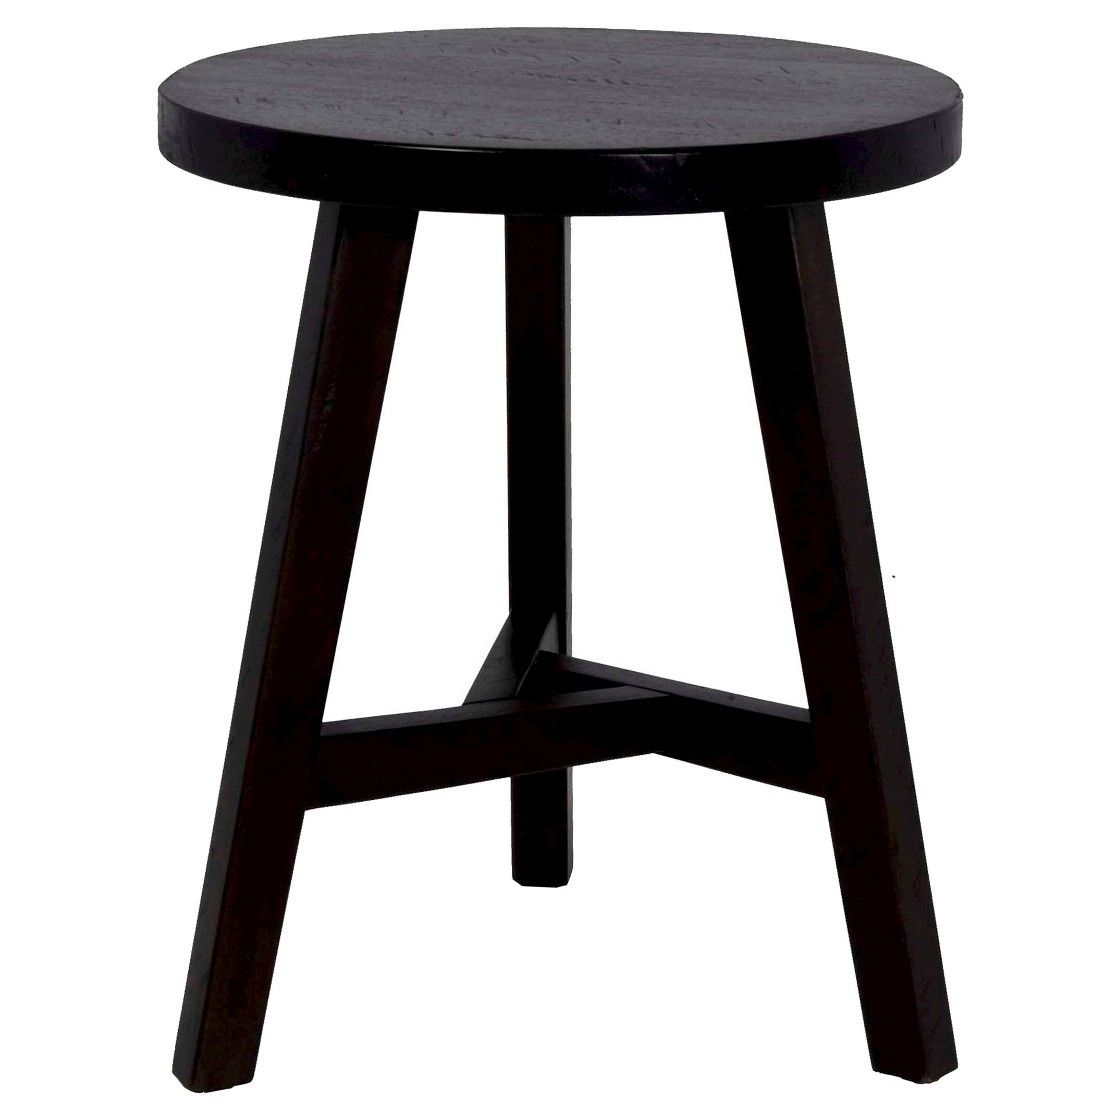 threshold round stool accent table espresso decor nest glass side tables bathroom small antique and chairs worktop legs patchwork rug target gold inch console shallow cabinet bar